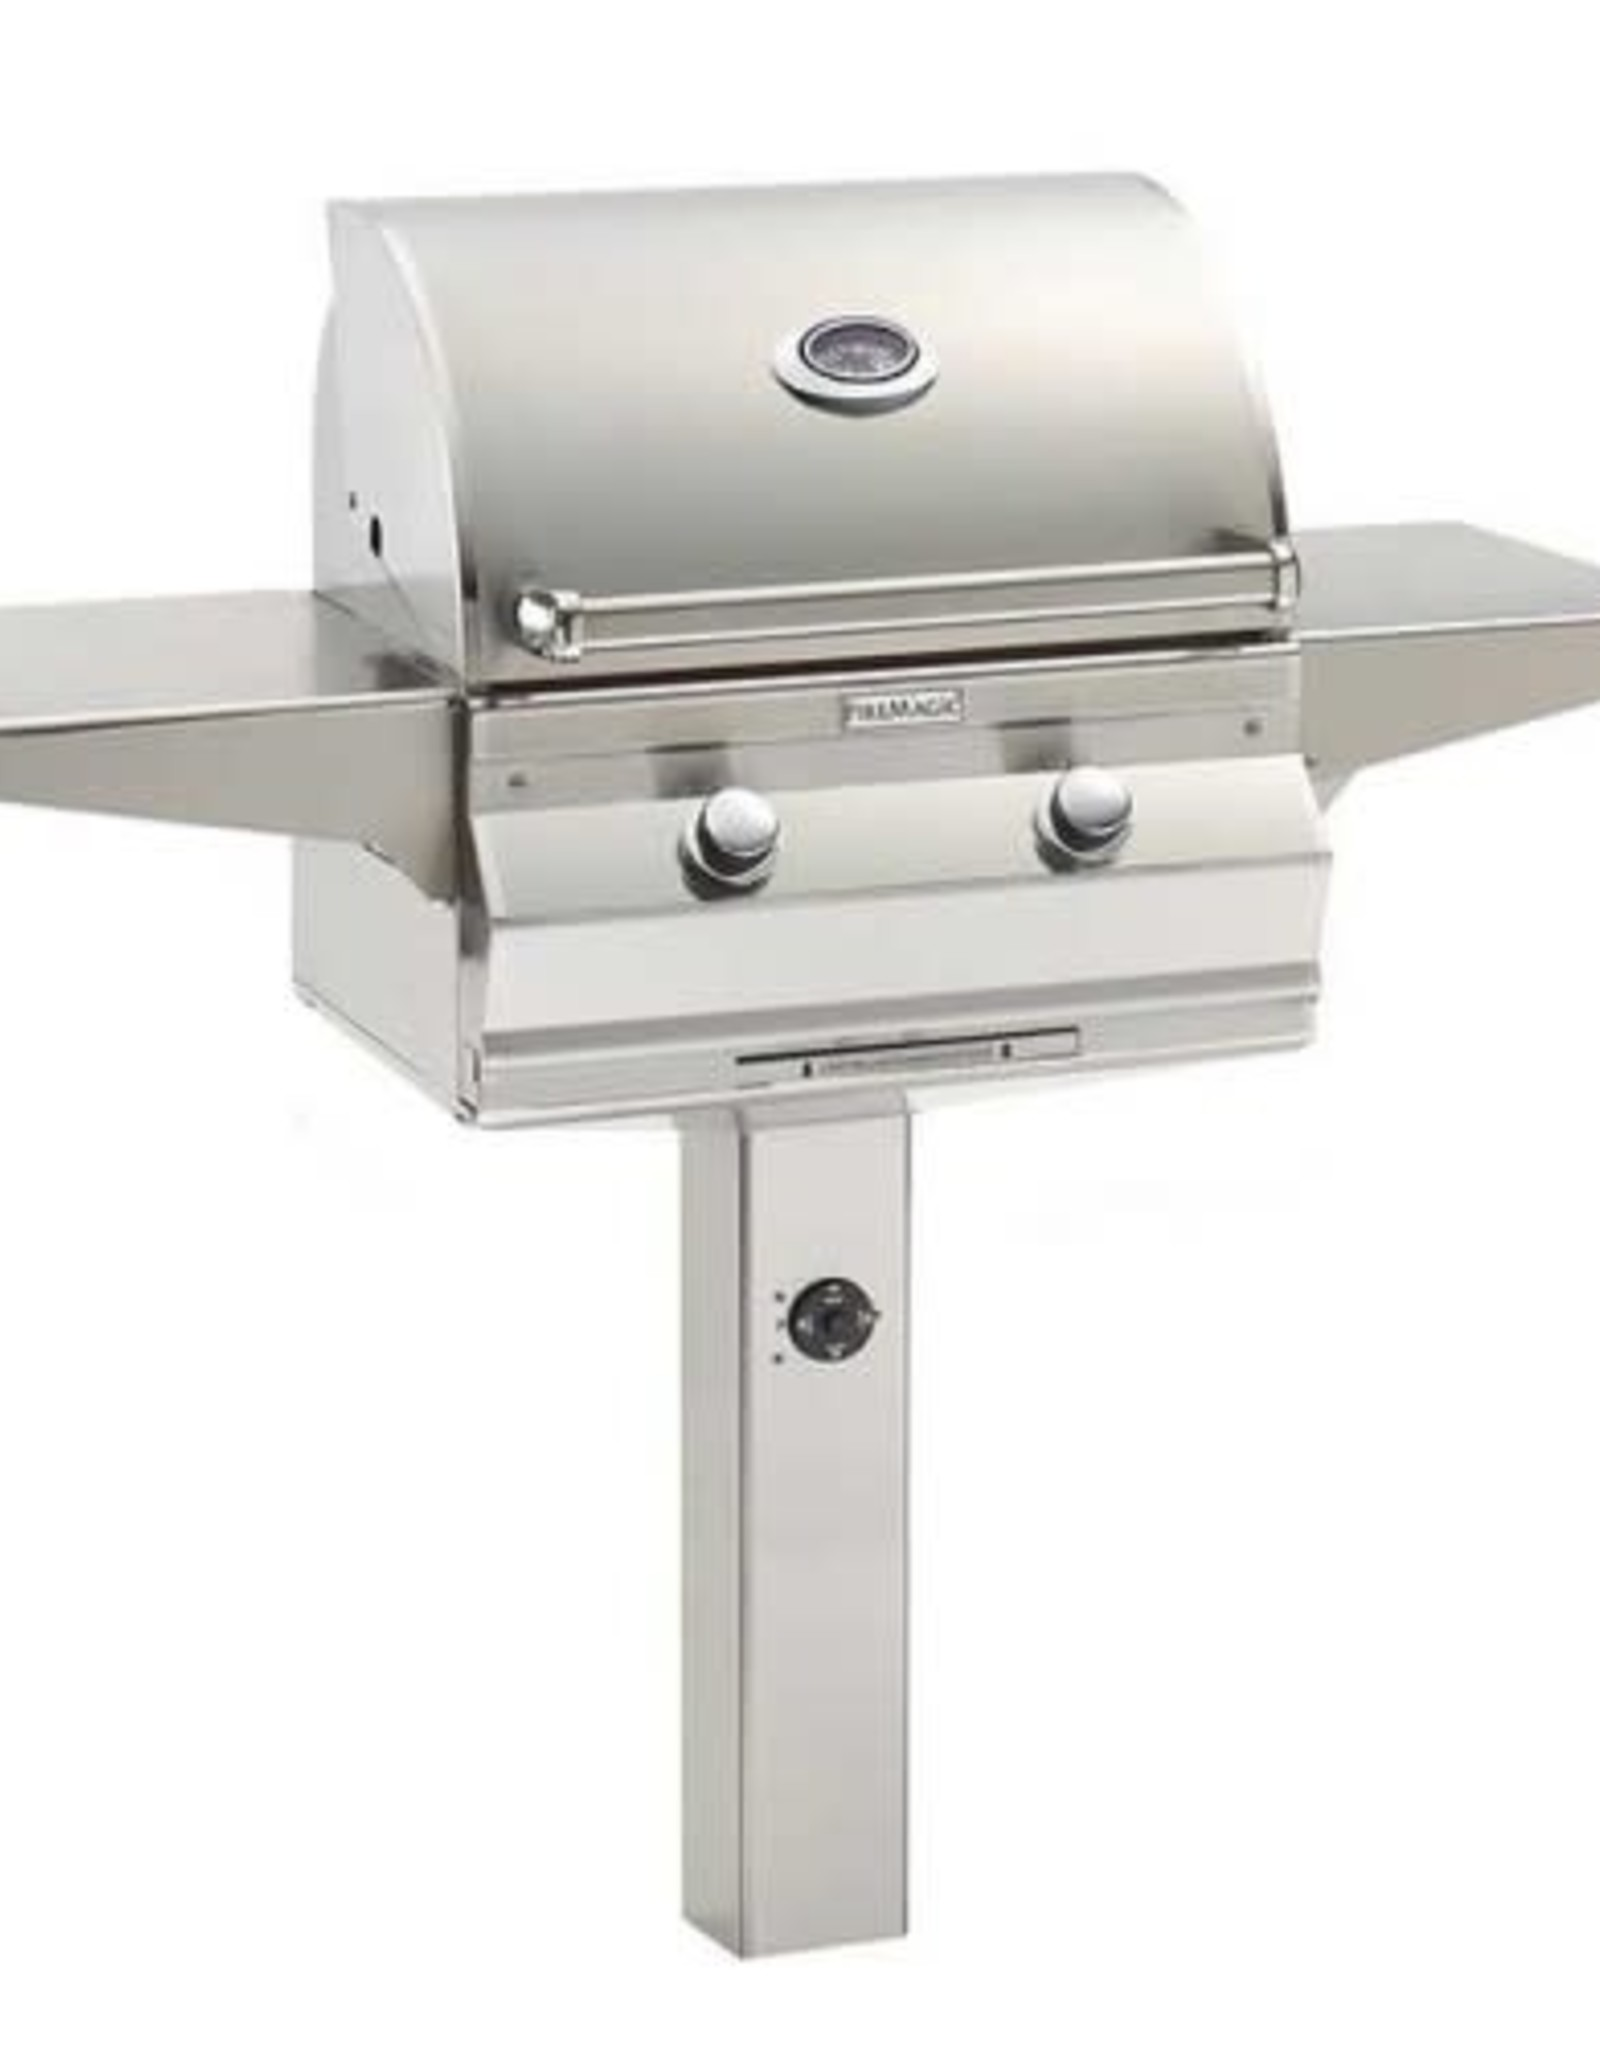 Fire Magic Fire Magic Choice C430 24-inch In-Ground Post Mount Grill